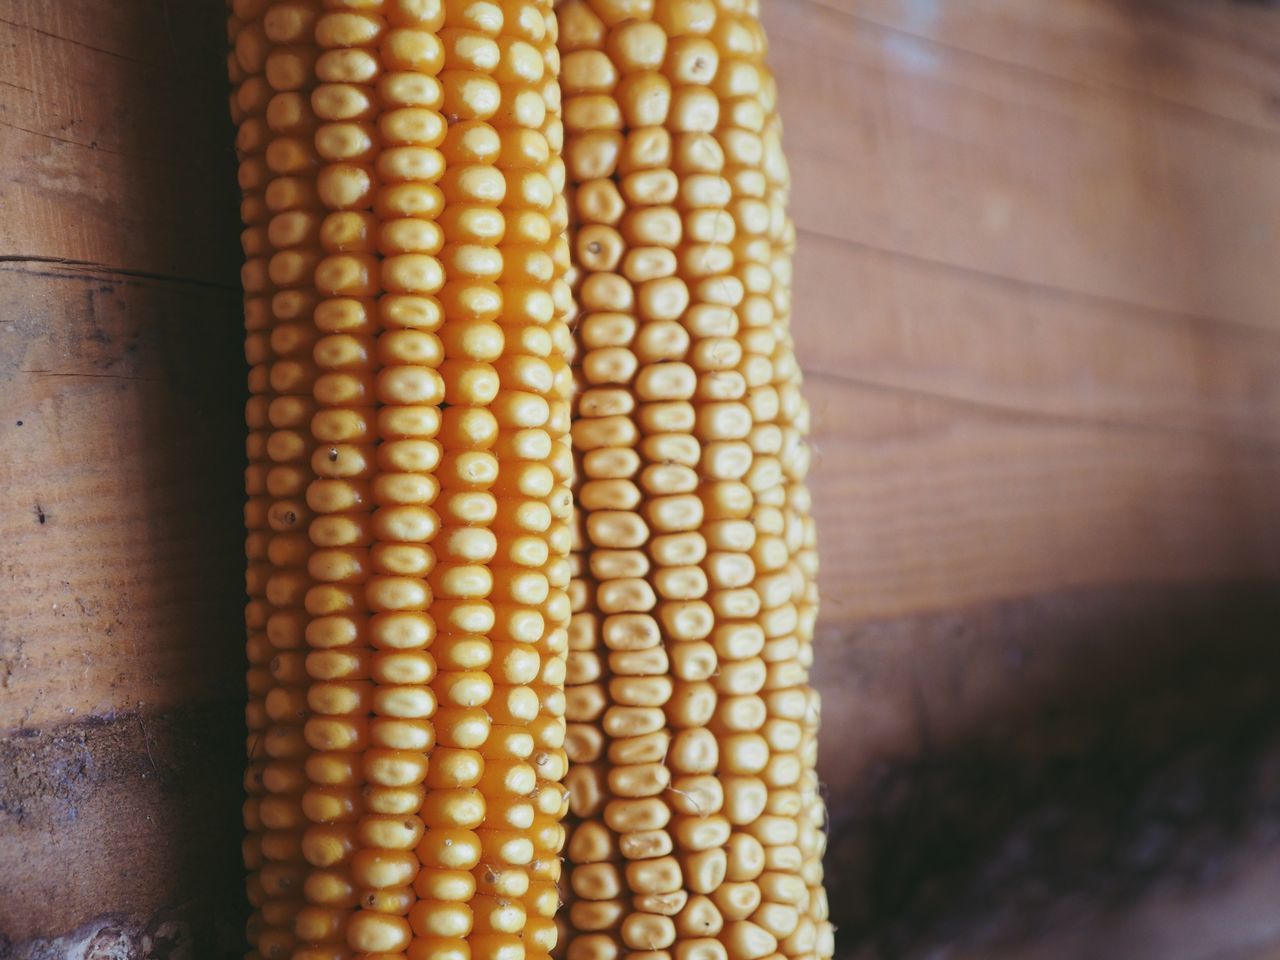 CLOSE-UP OF CORN ON YELLOW BOARD